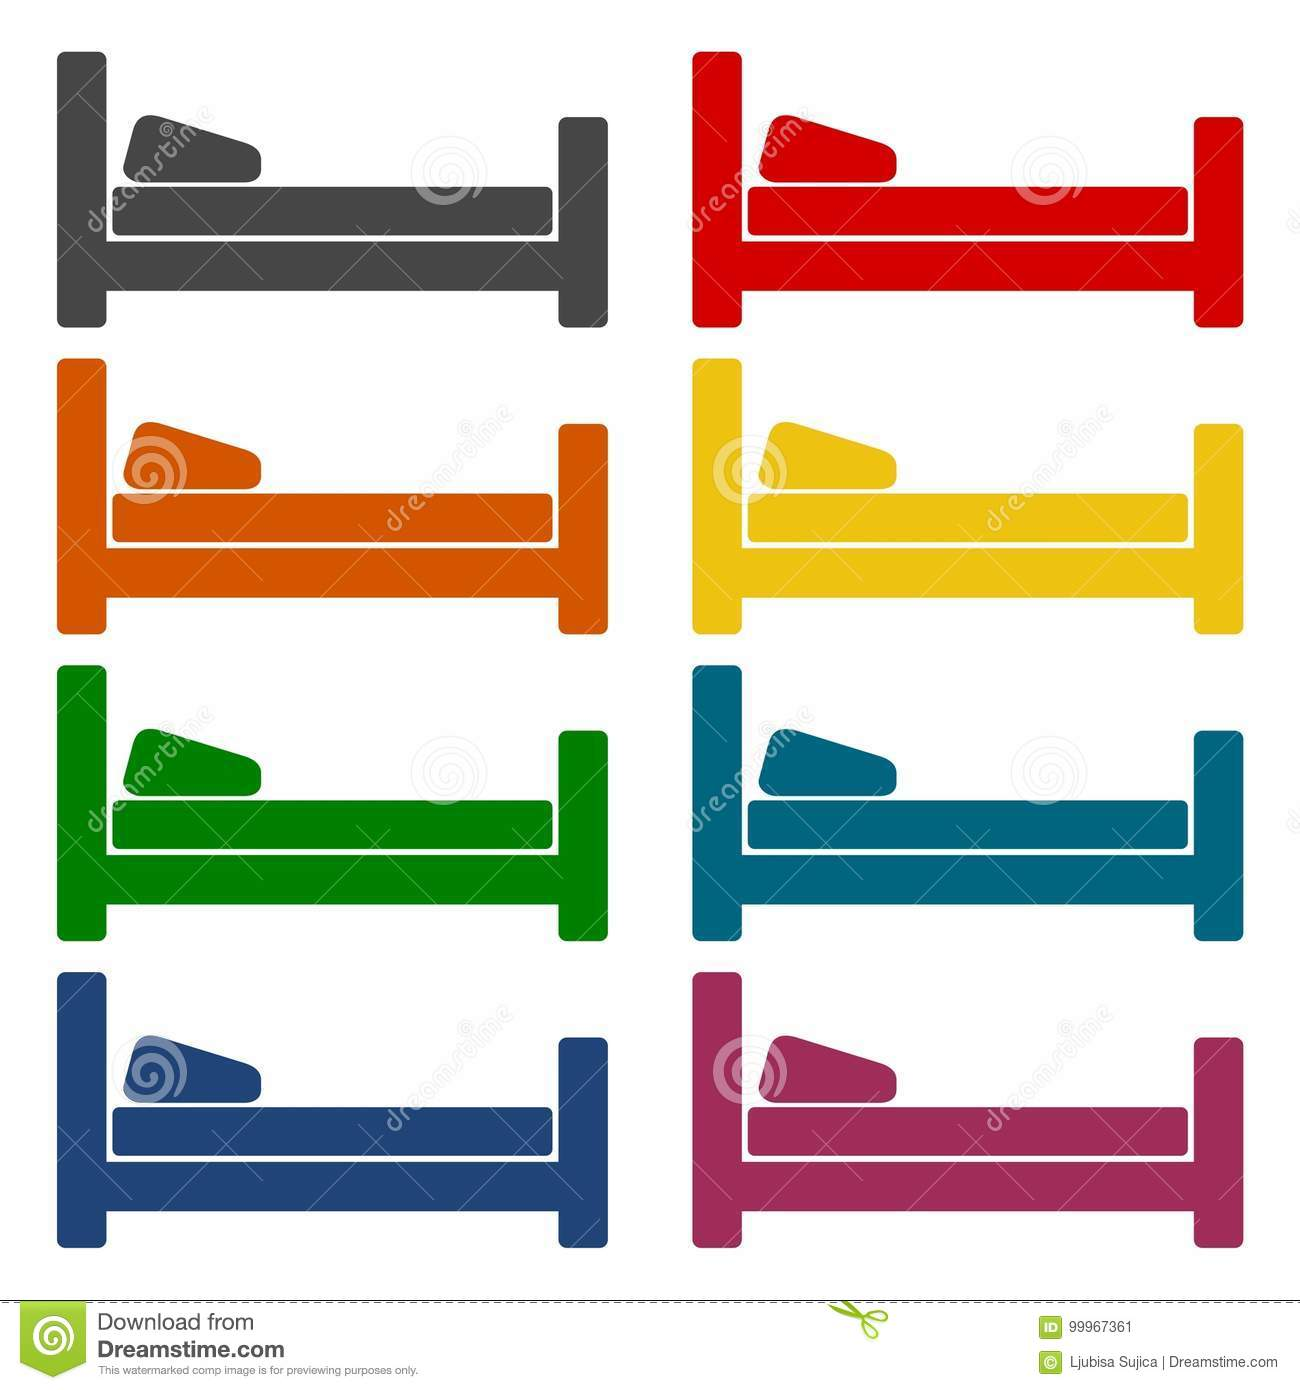 Hotel symbol, hospital bed, The bed icons set